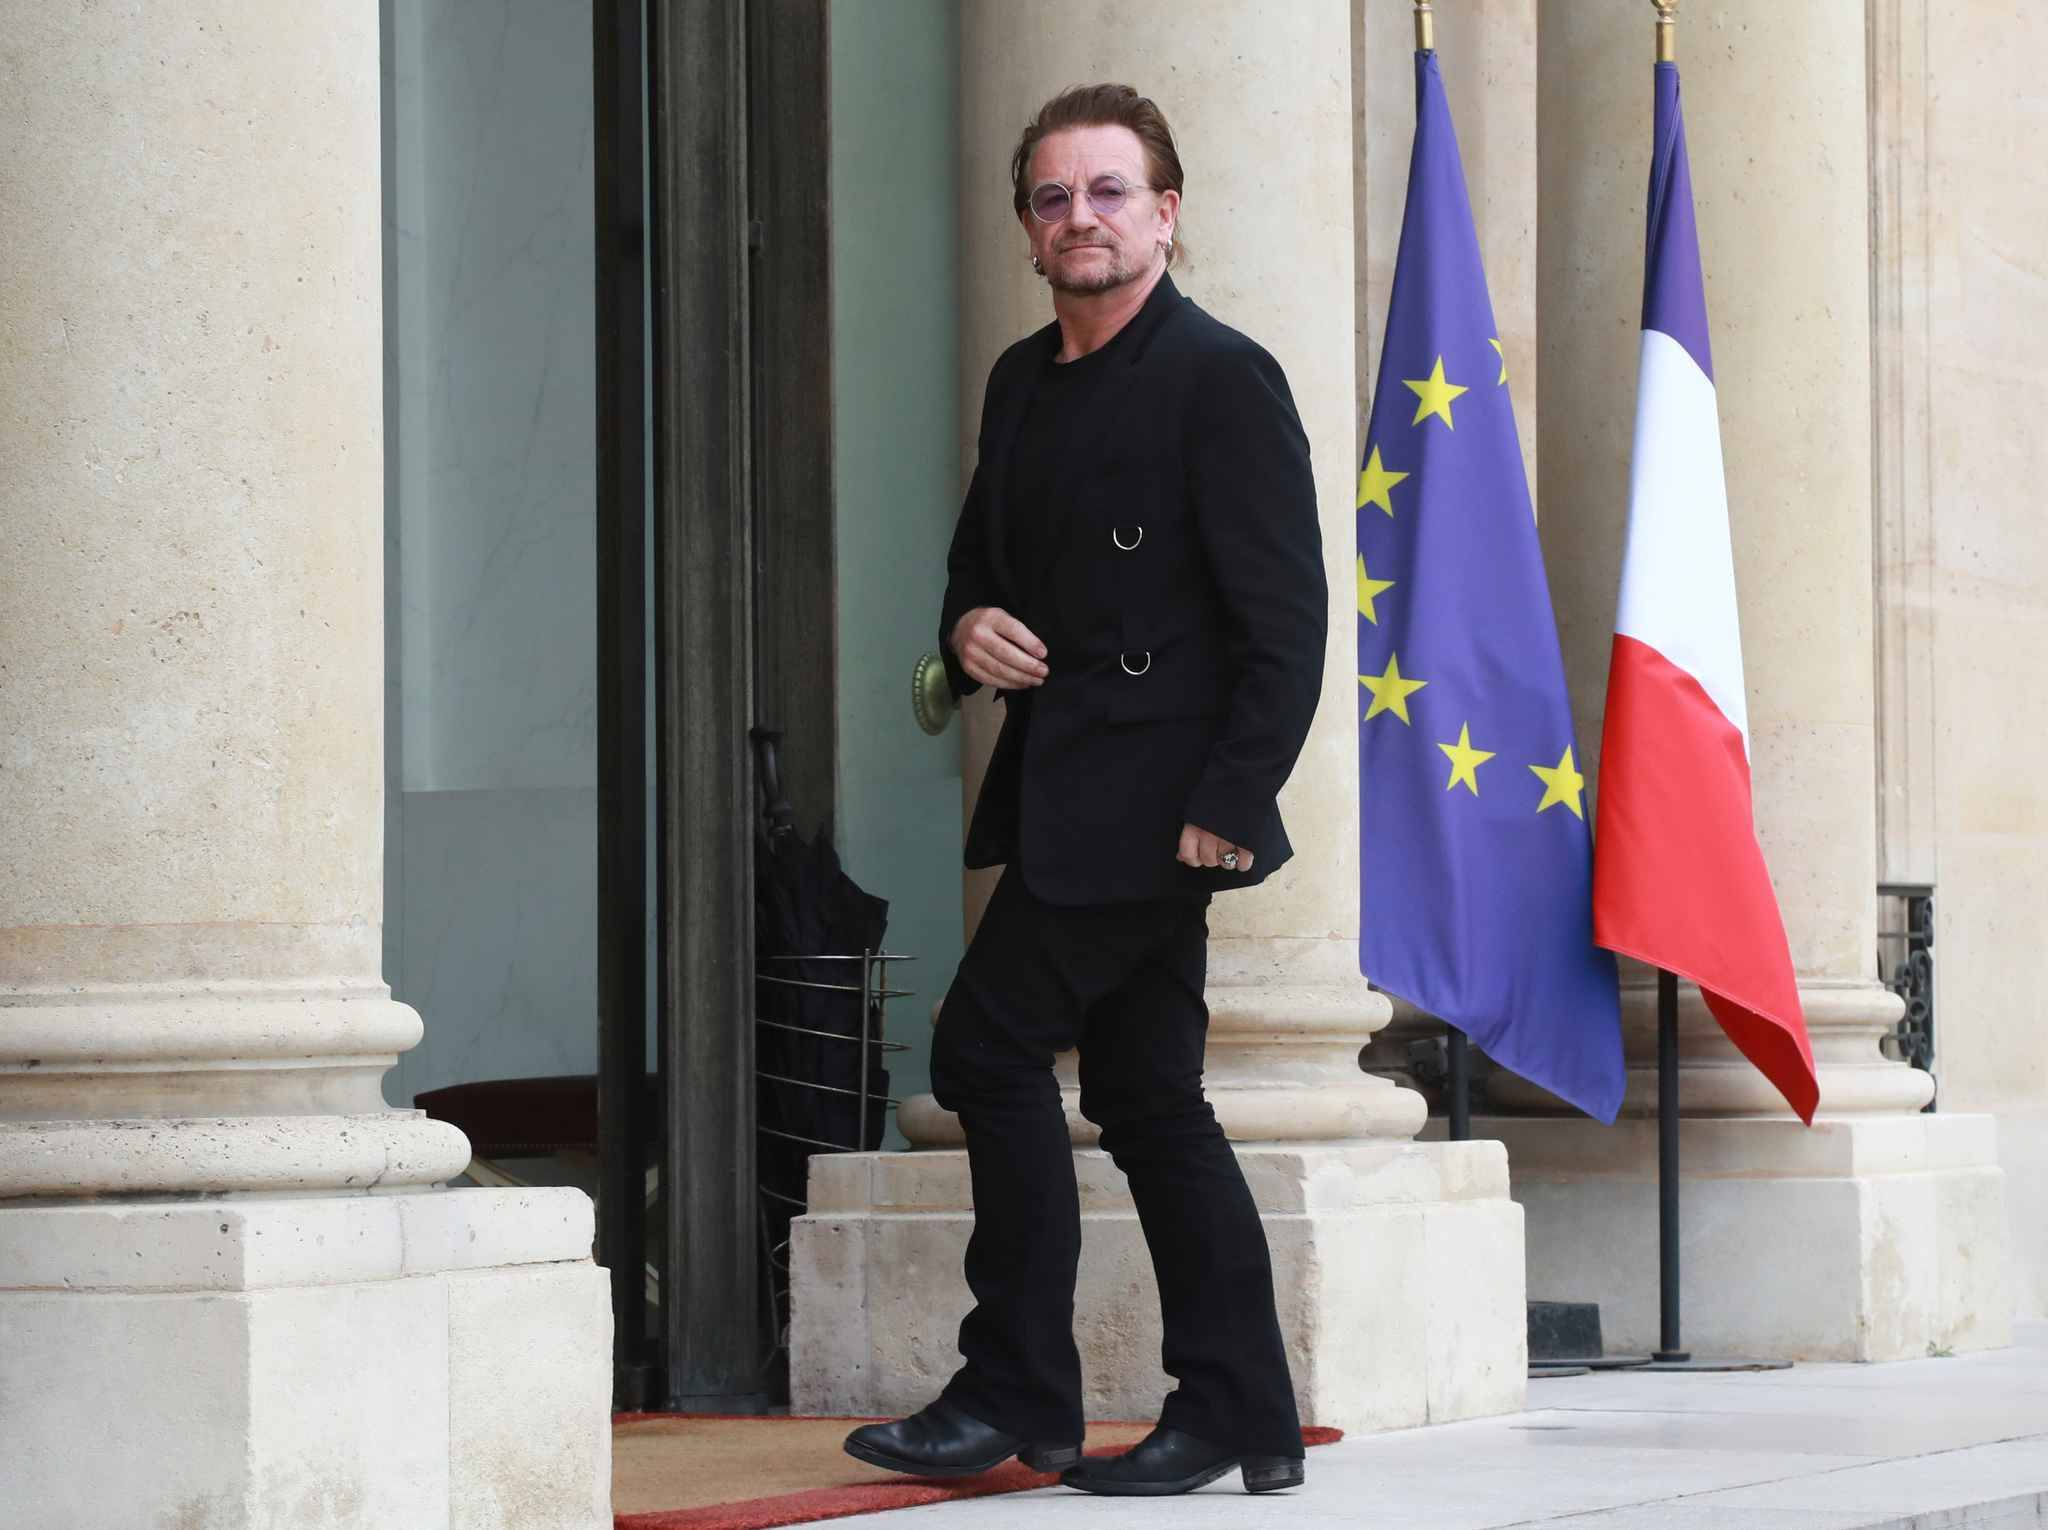 Irish U2 musician and philanthropist Bono, co-founder of the organisation ONE, arrives at the Elysee Palace in Paris  to meet with the French president on July 24, 2017.  Paul David Hewson, better known as Bono, will be meeting the French president in a bid to champion his organisation One which battles against extreme poverty and illness, particularly in Africa.